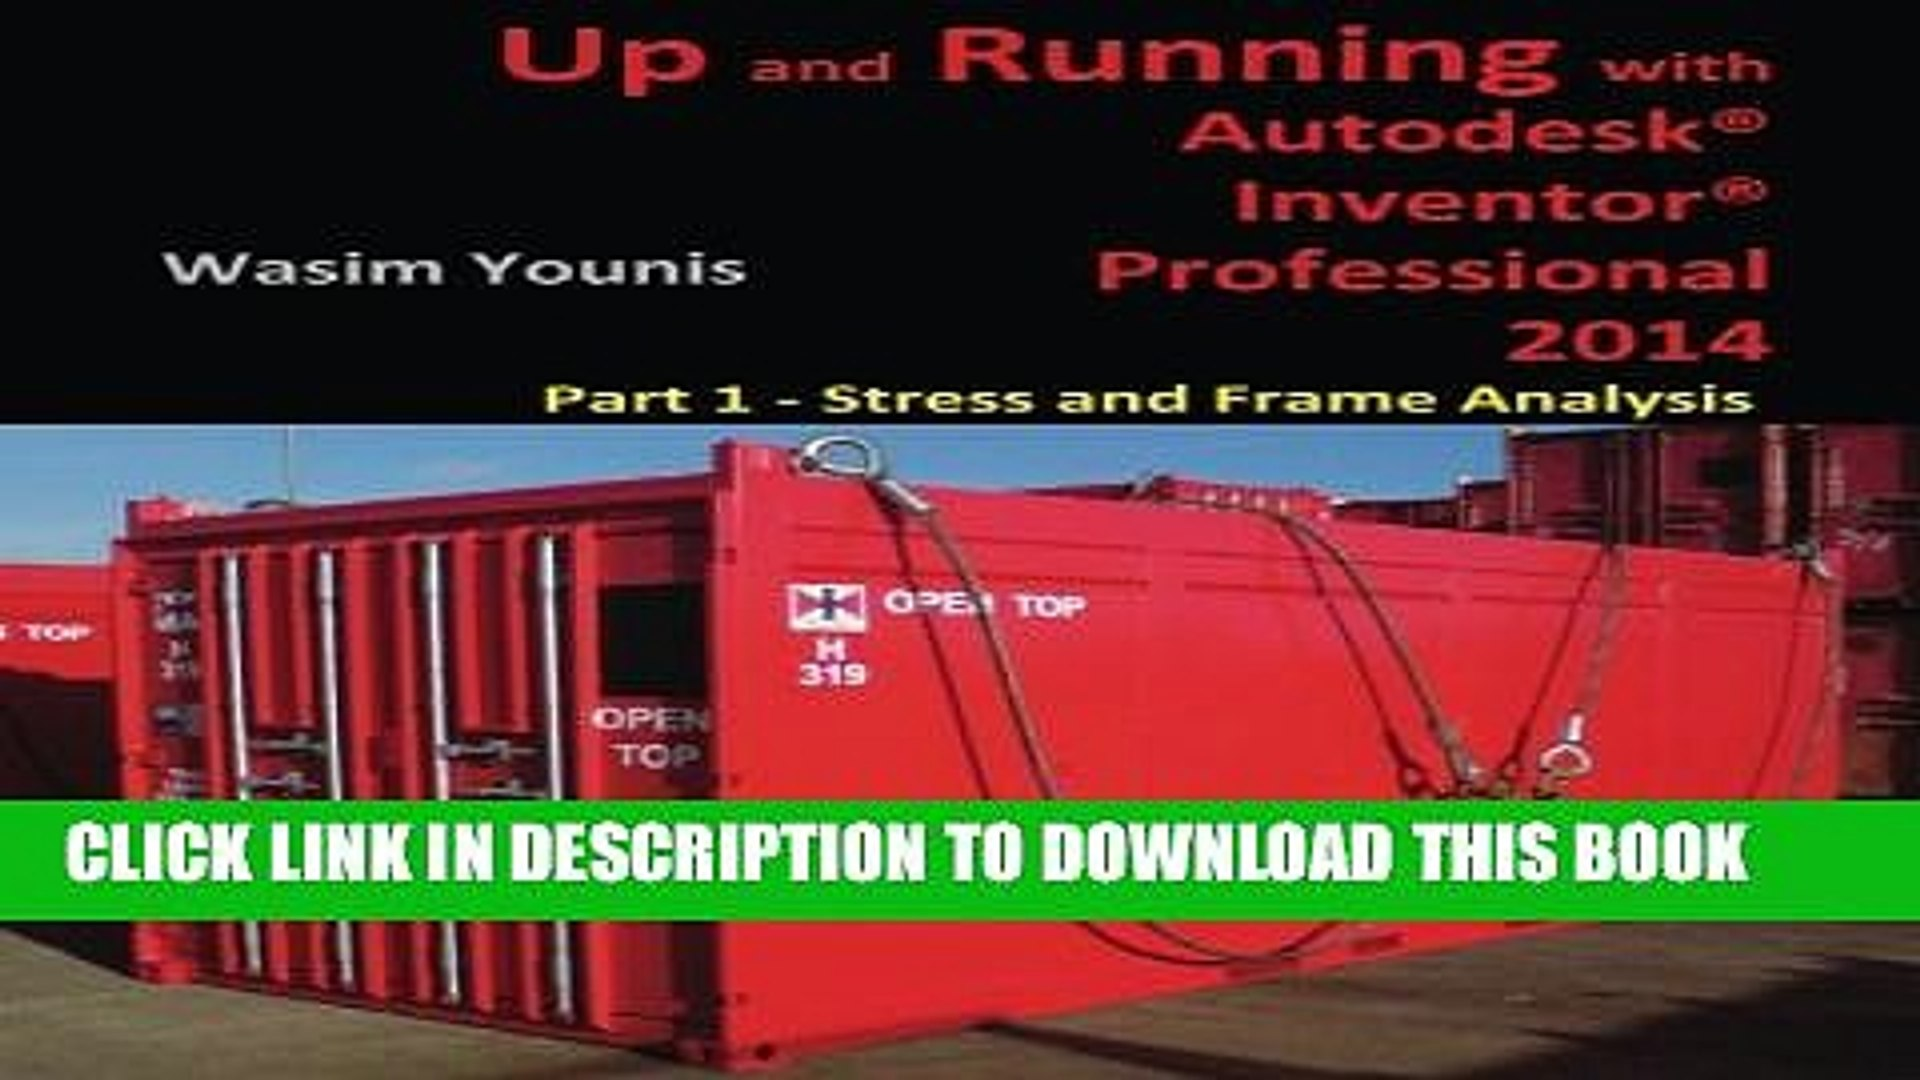 [PDF] Up and Running with Autodesk Inventor Professional 2014: Part 1 -  Stress and Frame Analysis